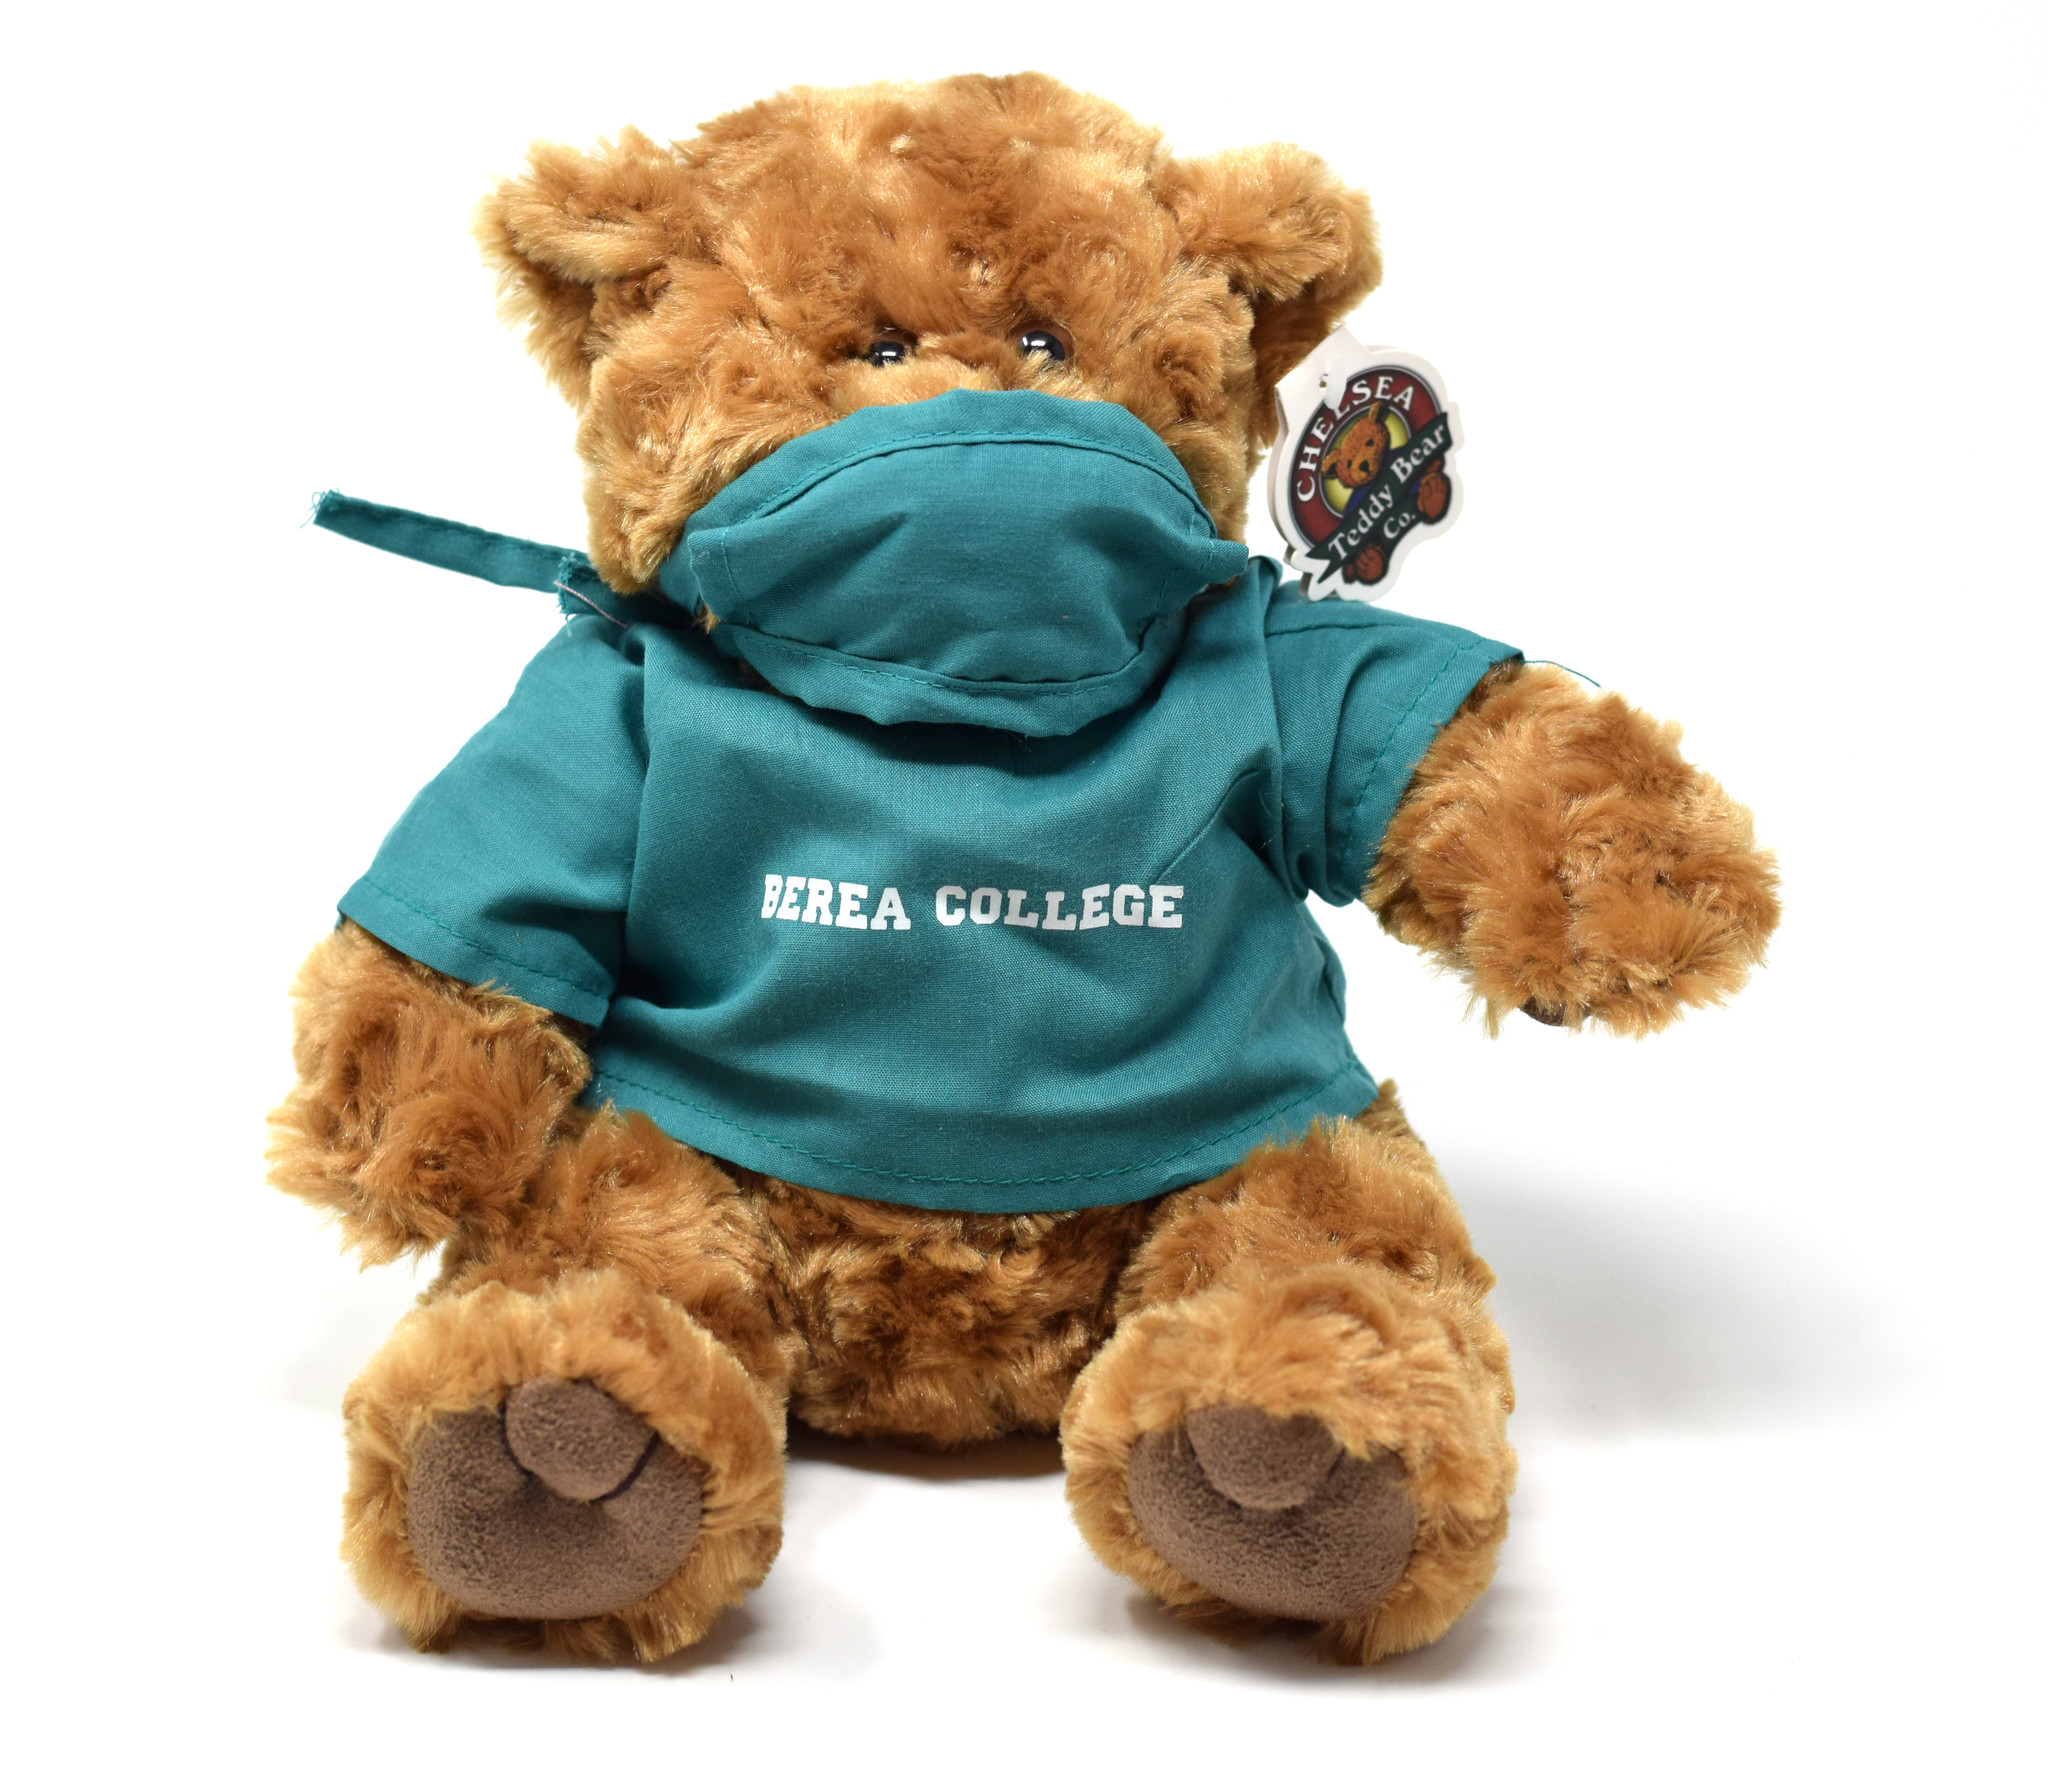 Berea College Nurse Bear-1